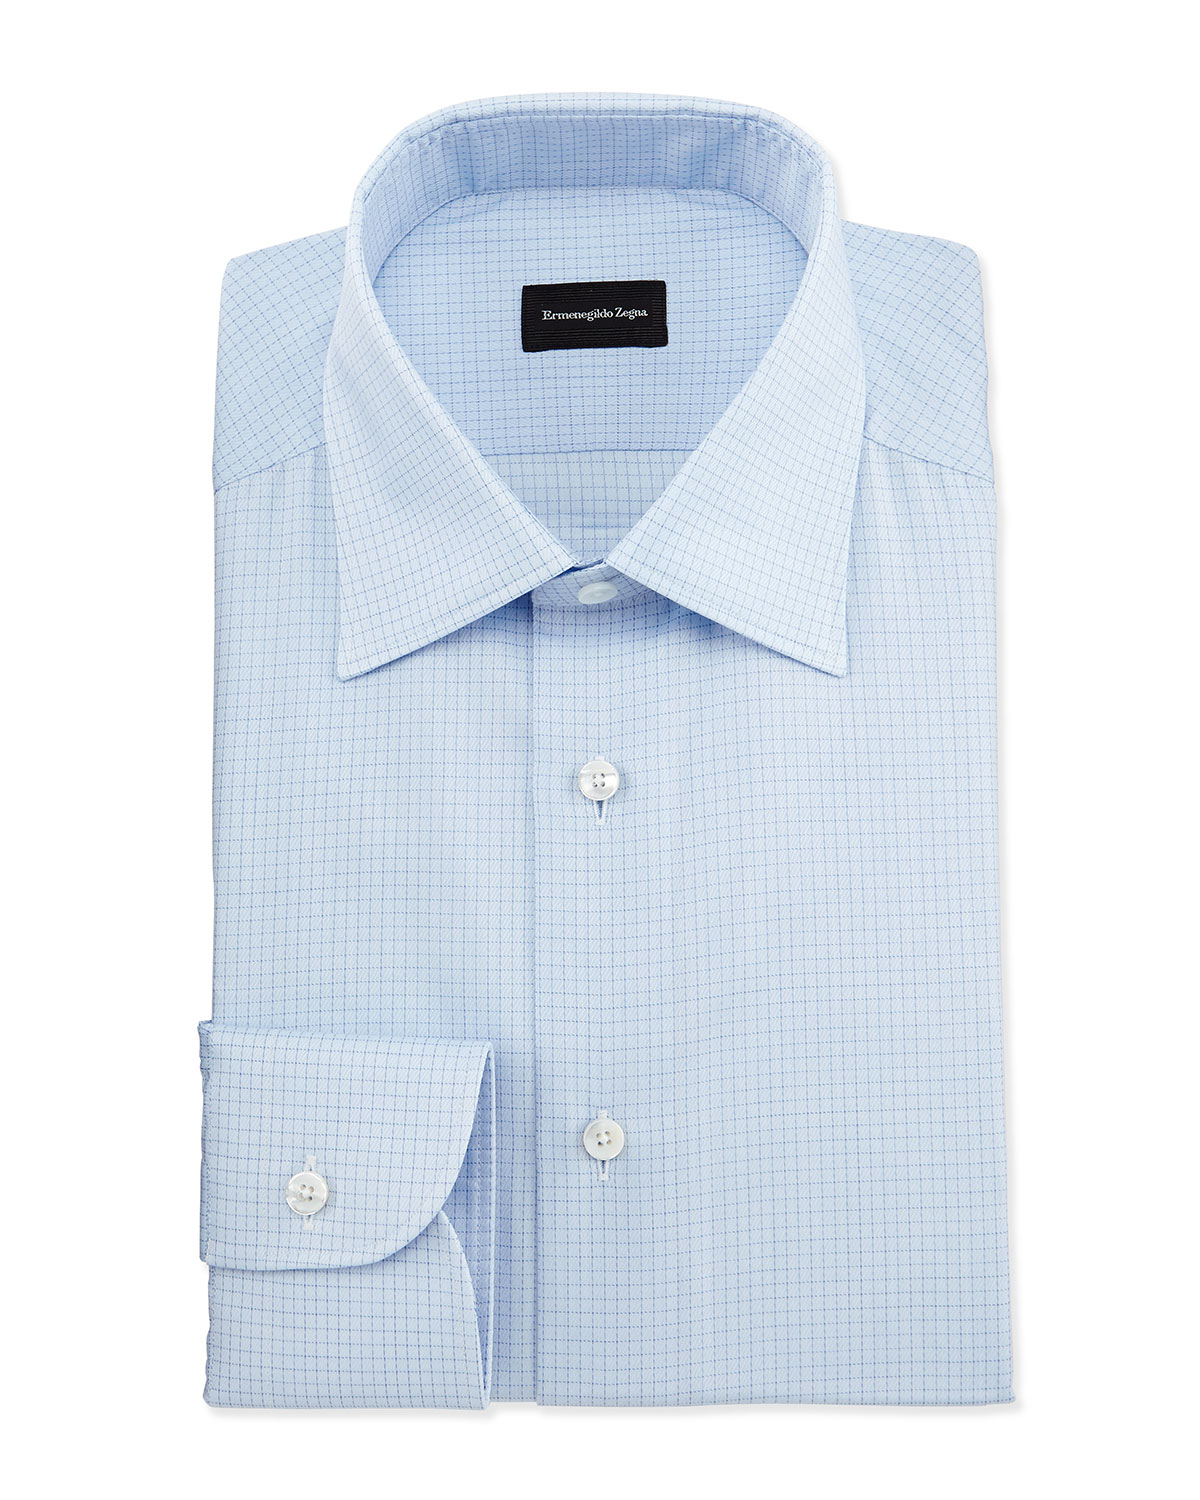 Ermenegildo zegna textured grid check dress shirt in blue for Blue check dress shirt